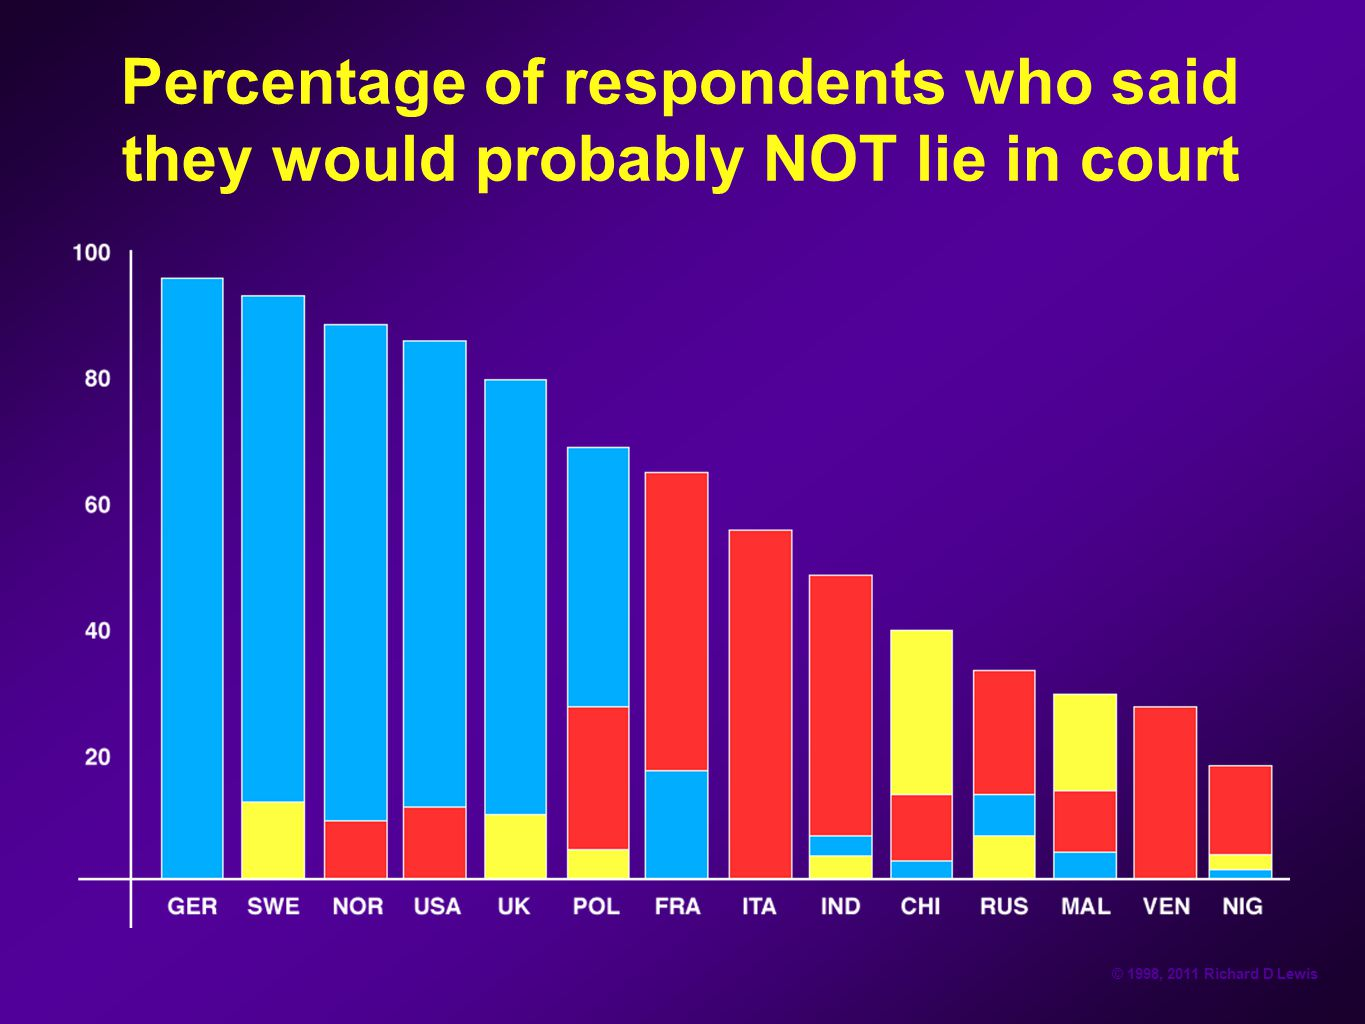 Percentage of respondents who said they would probably NOT lie in court